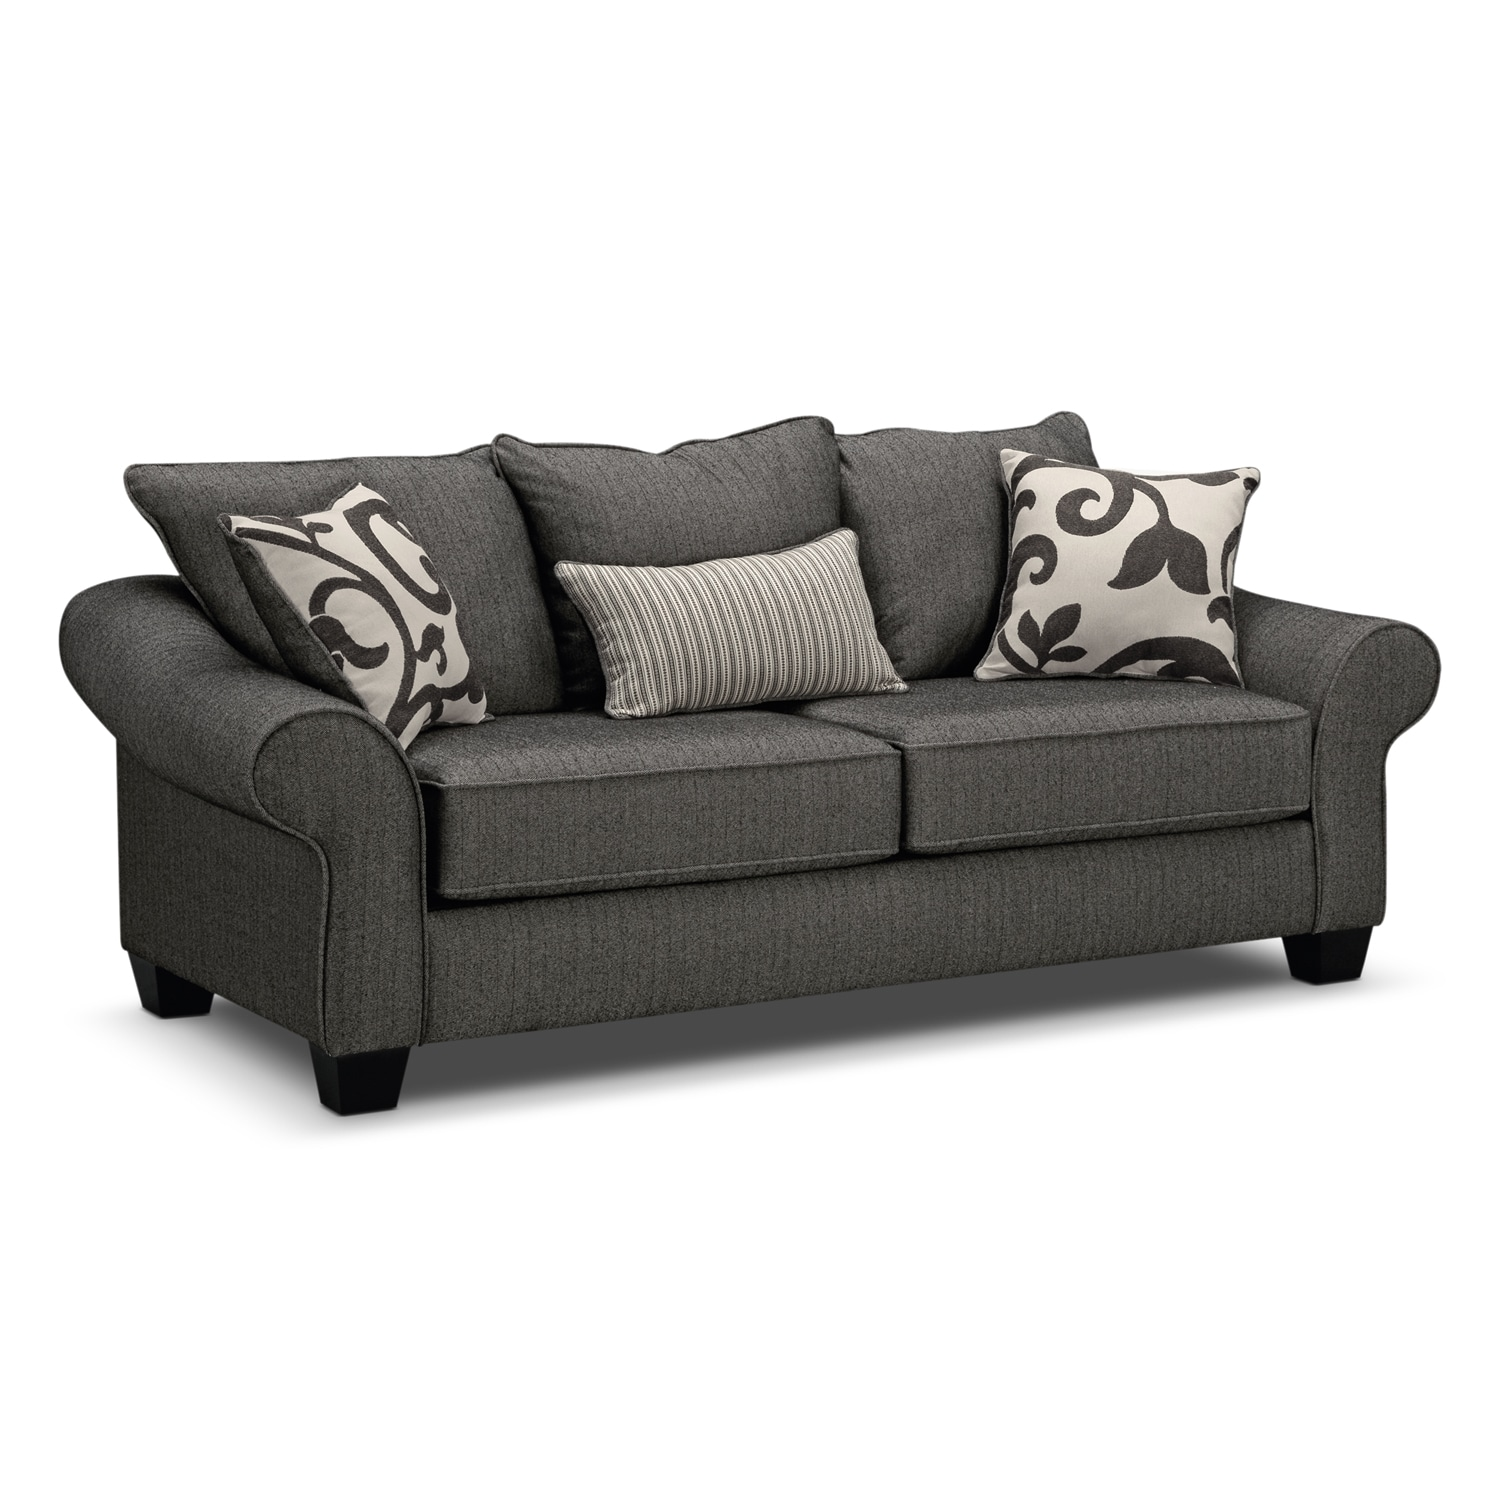 Colette Full Memory Foam Sleeper Sofa Gray